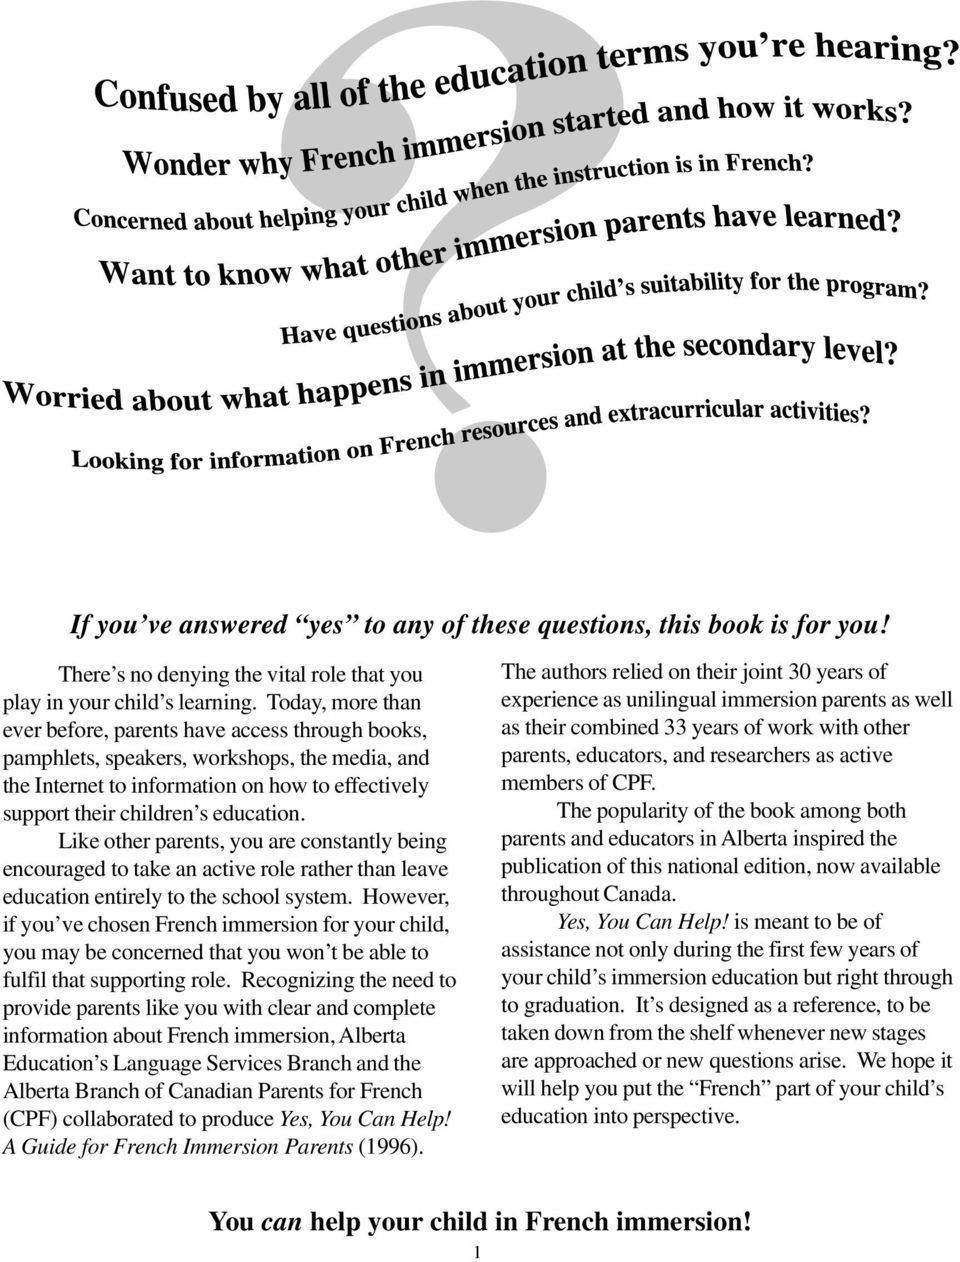 Like other parents, you are constantly being encouraged to take an active role rather than leave education entirely to the school system.